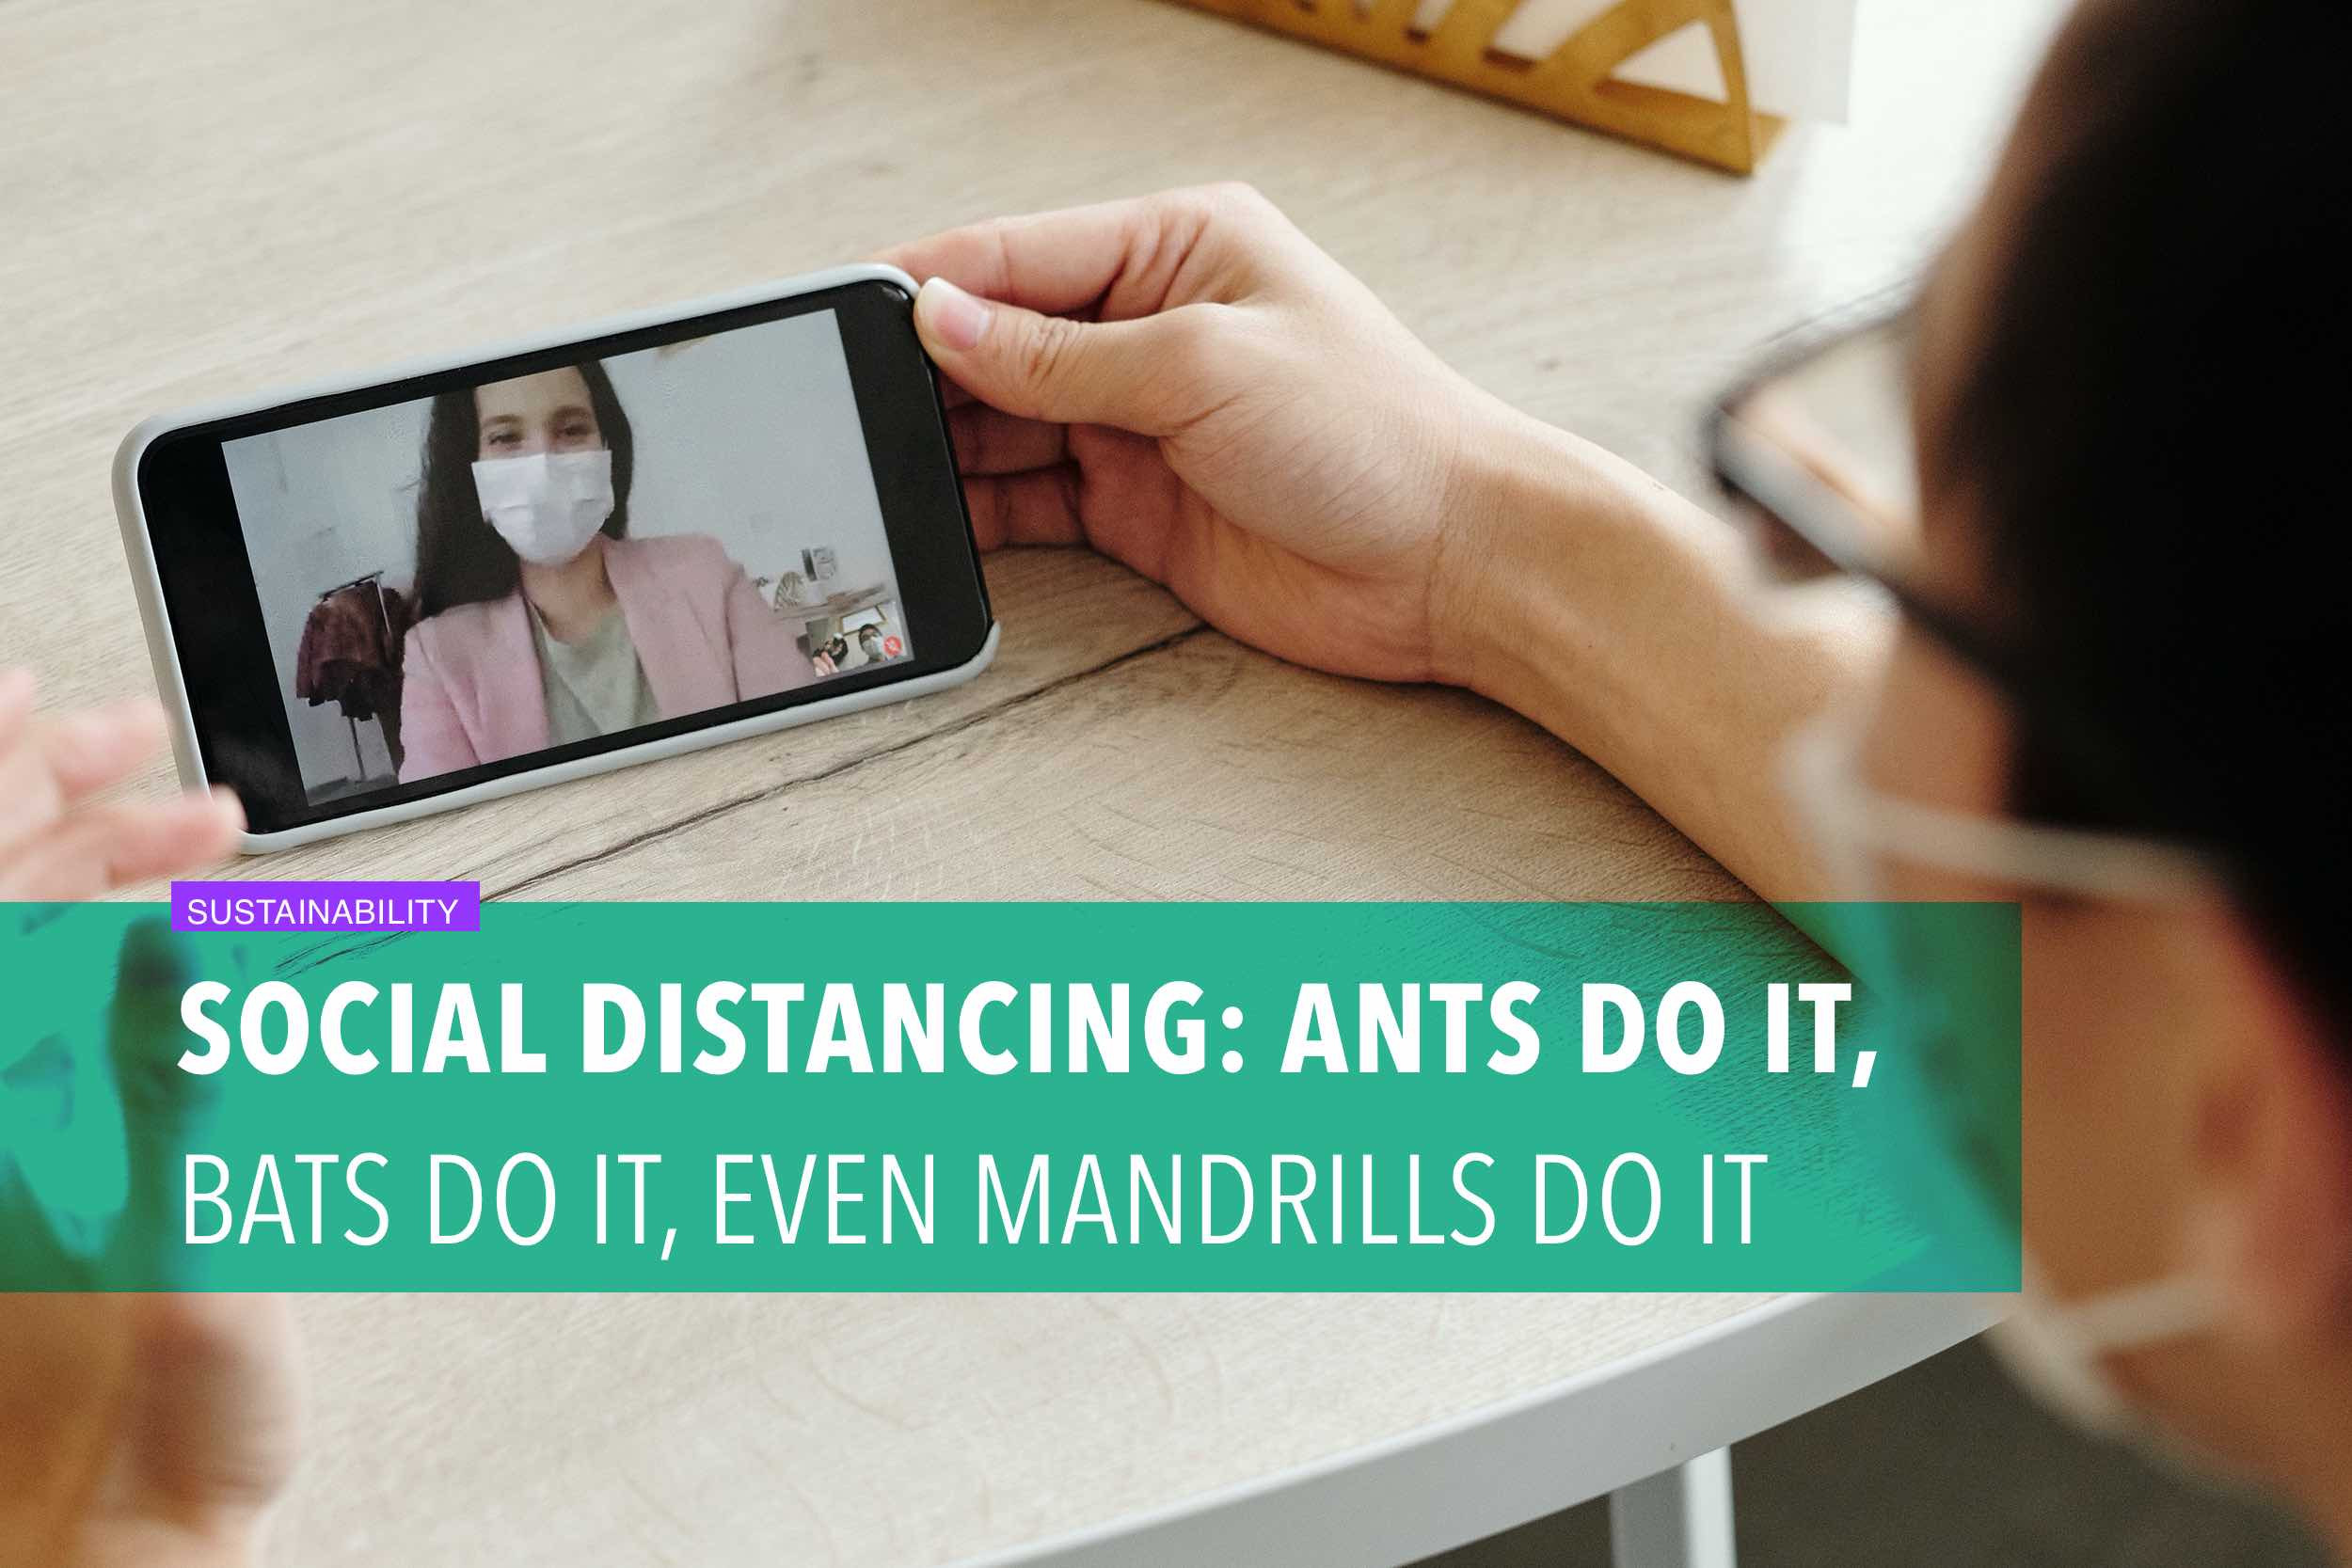 Social distancing: ants do it, bats do it, even mandrills do it